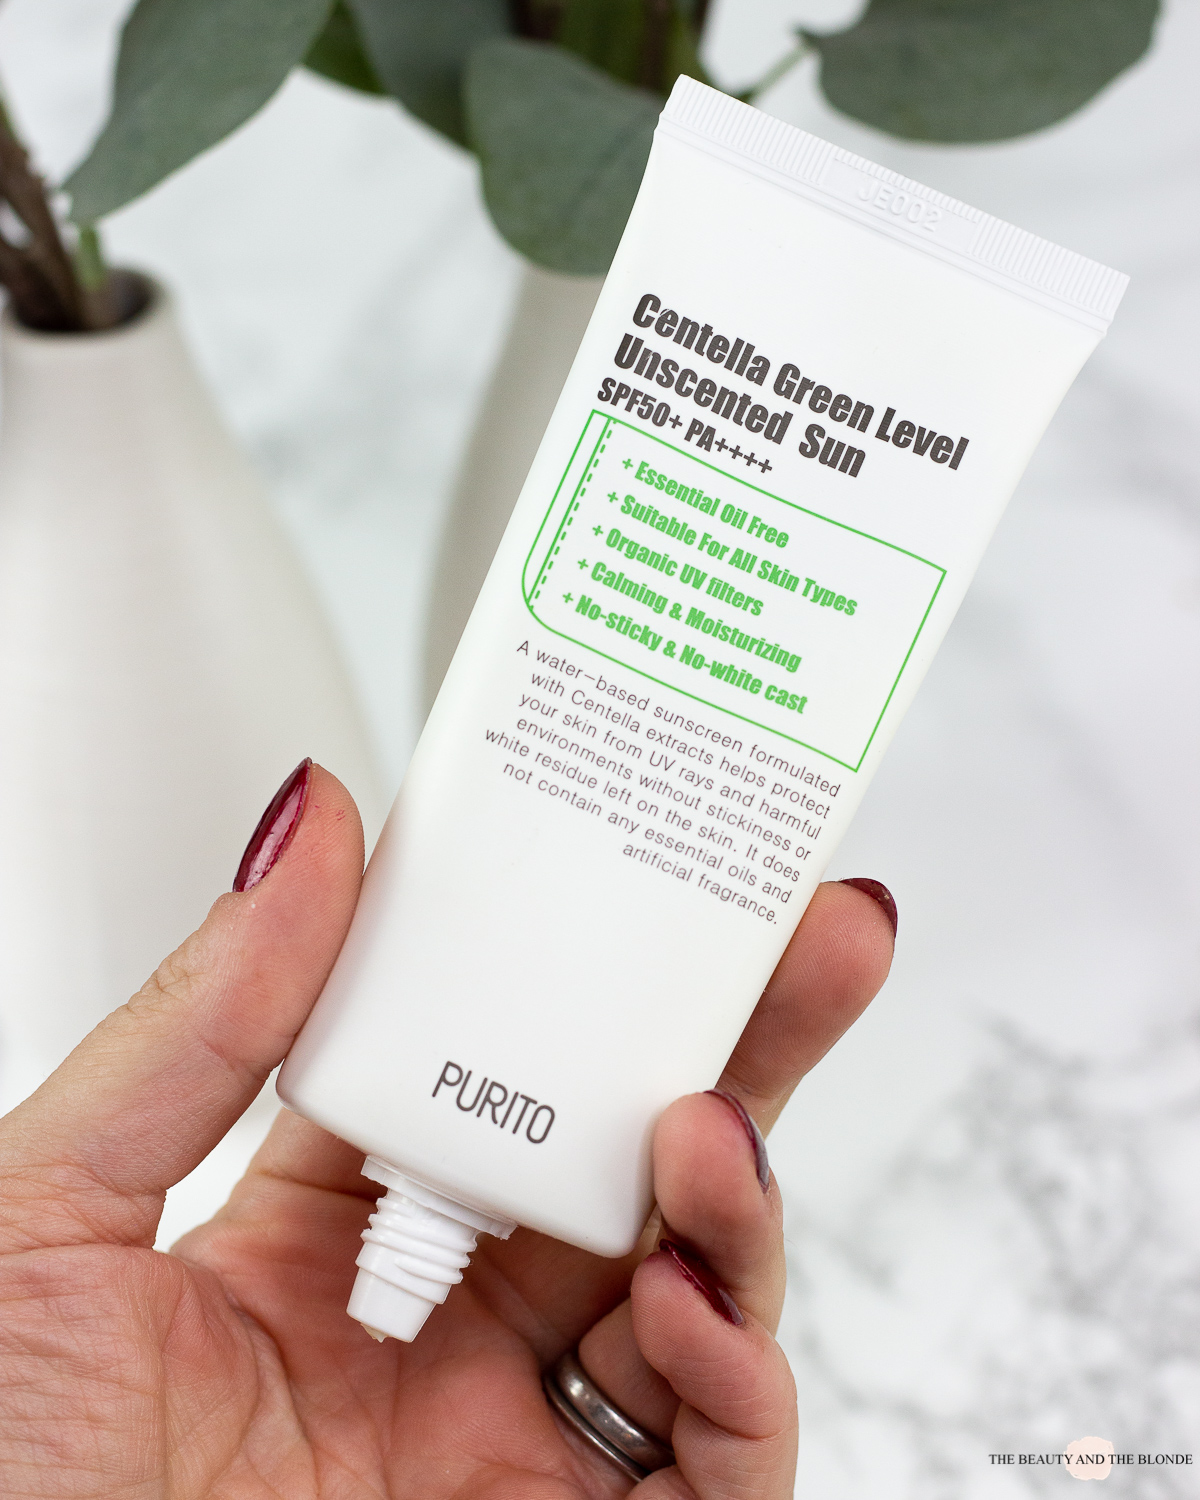 Purito Centella Green Level Unscented Sun Review